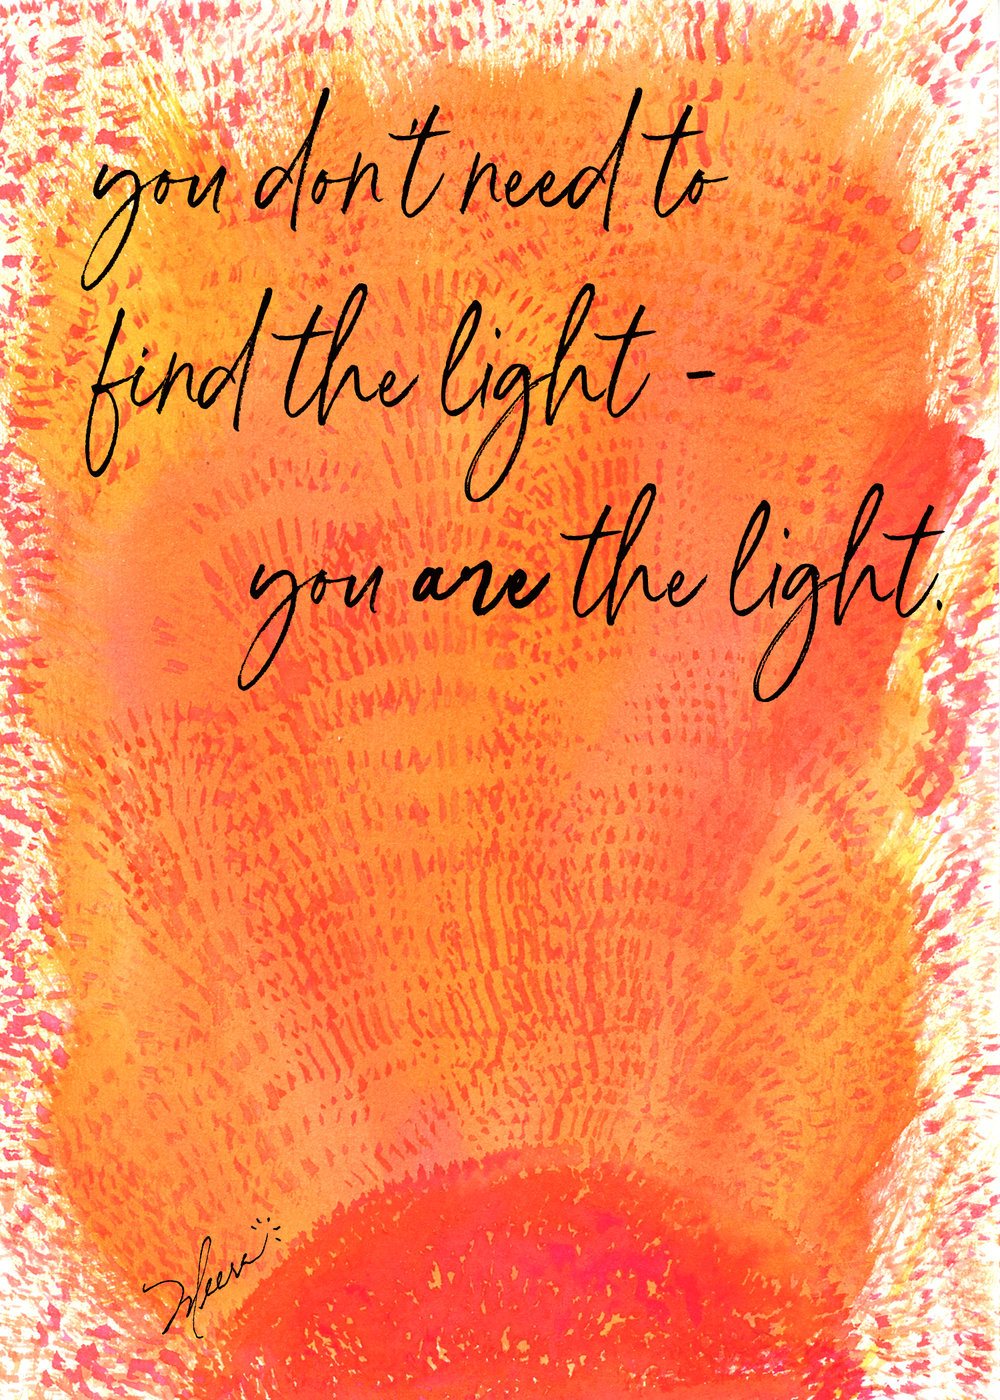 Print - You ARE the light.jpg